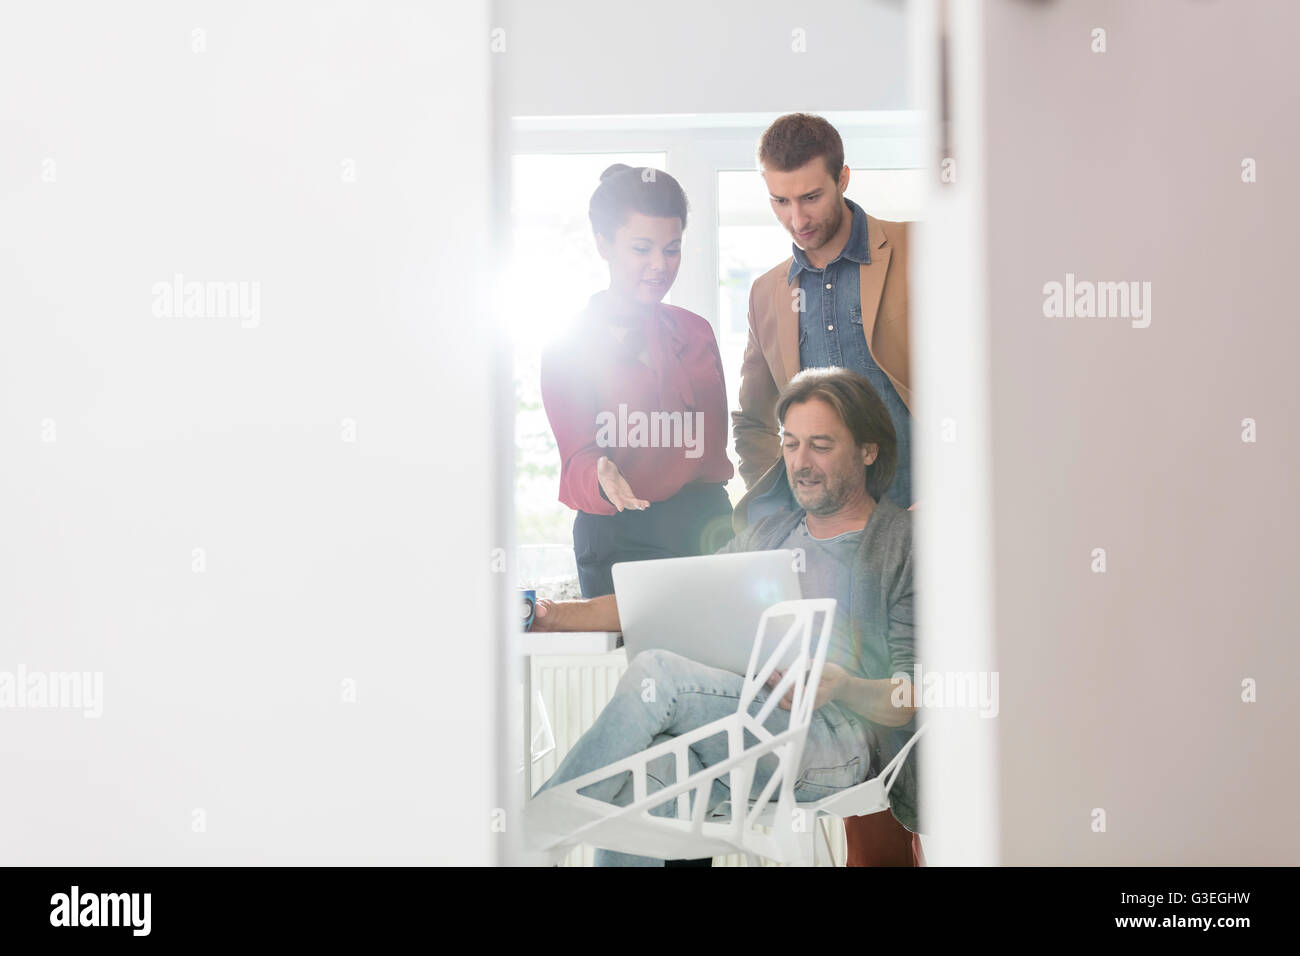 Creative business people sharing laptop in office meeting - Stock Image